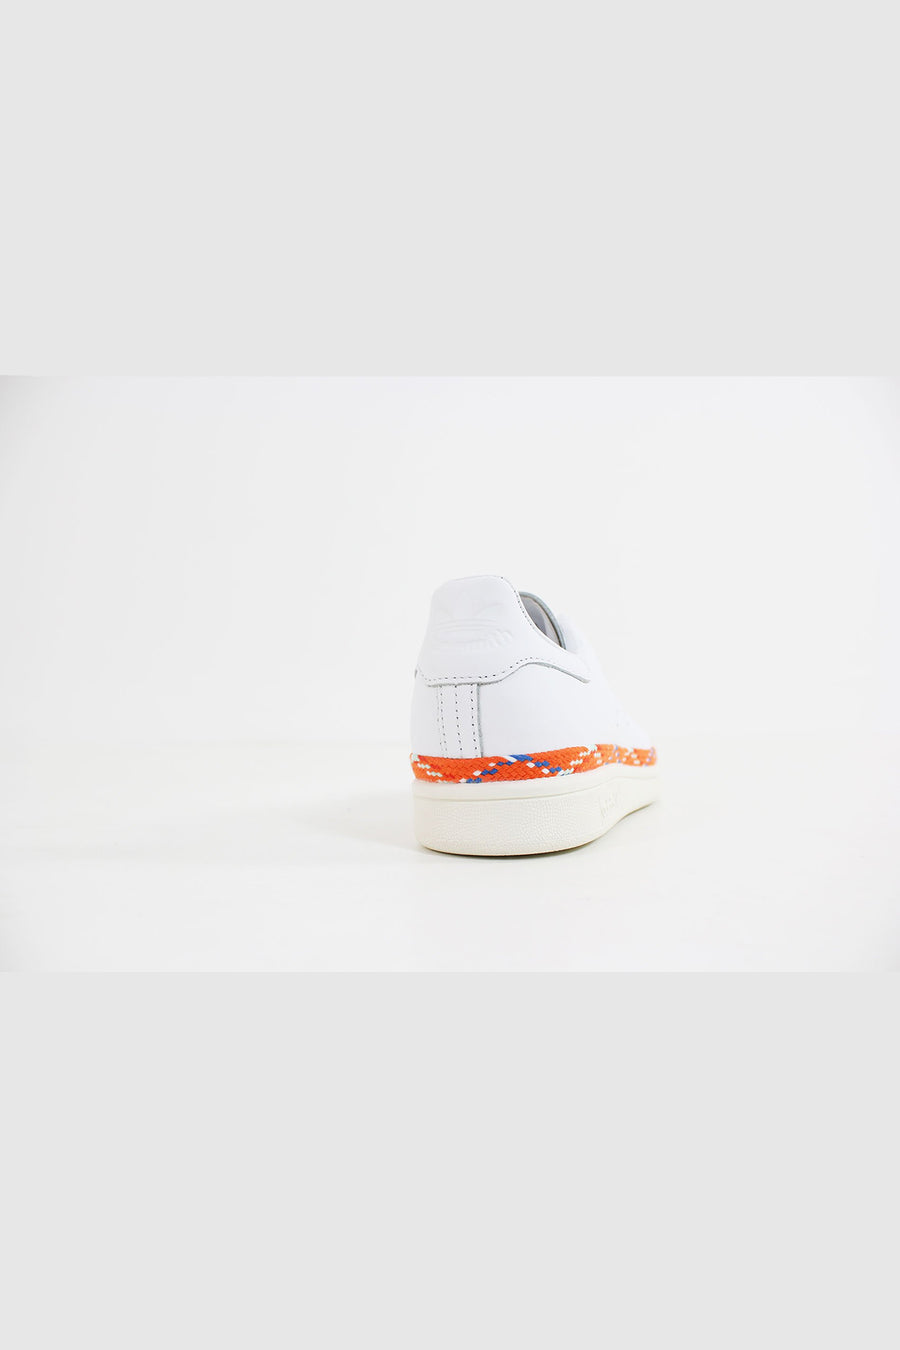 Adidas - Stan Smith New Bold Women (White/ White/ OWhite) AQ1027